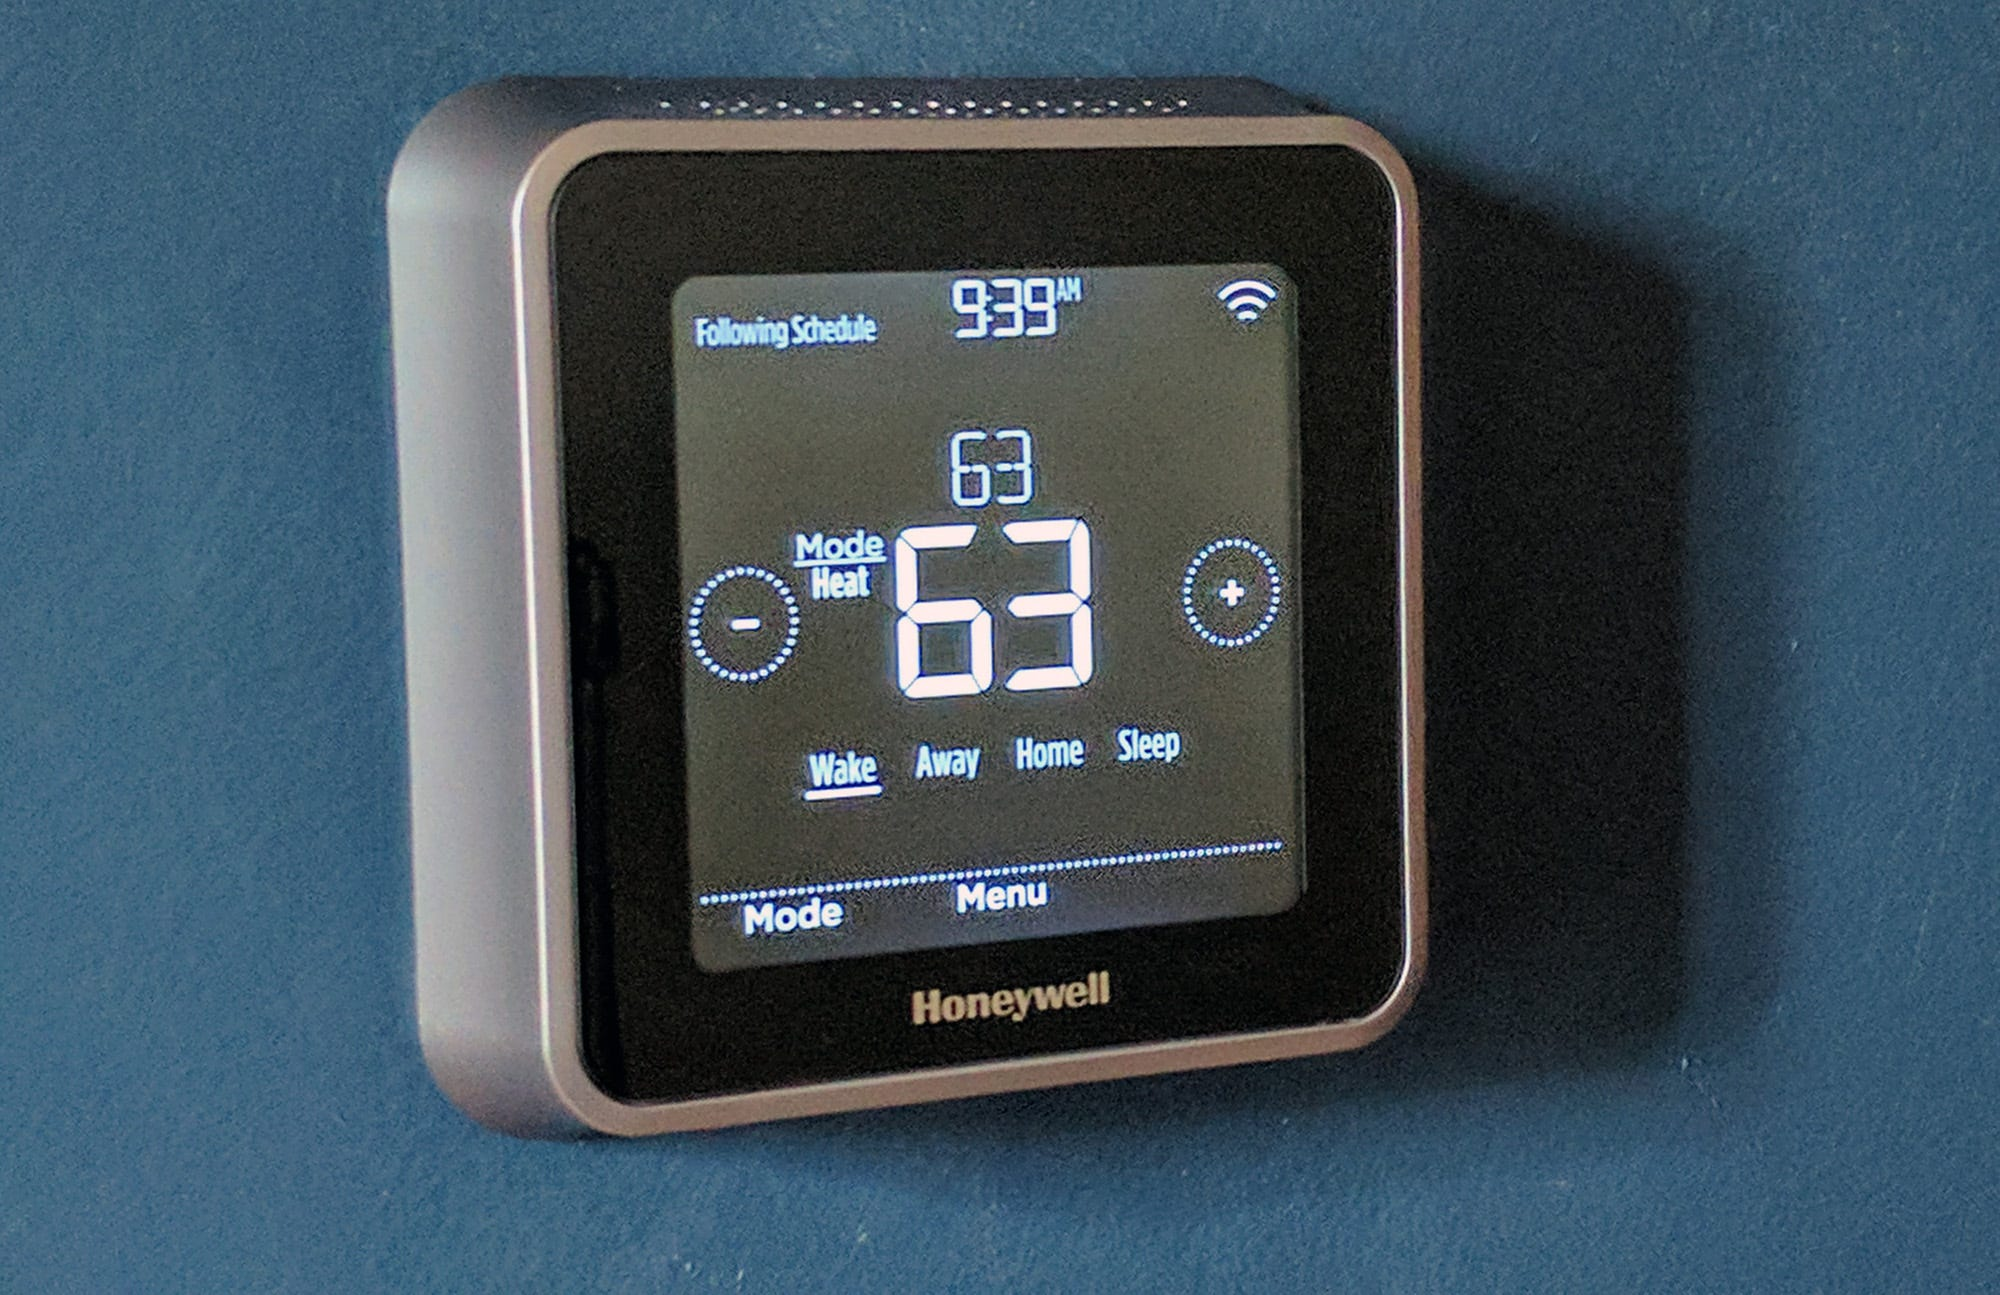 the honeywell lyric t5 wifi thermostat after you tap